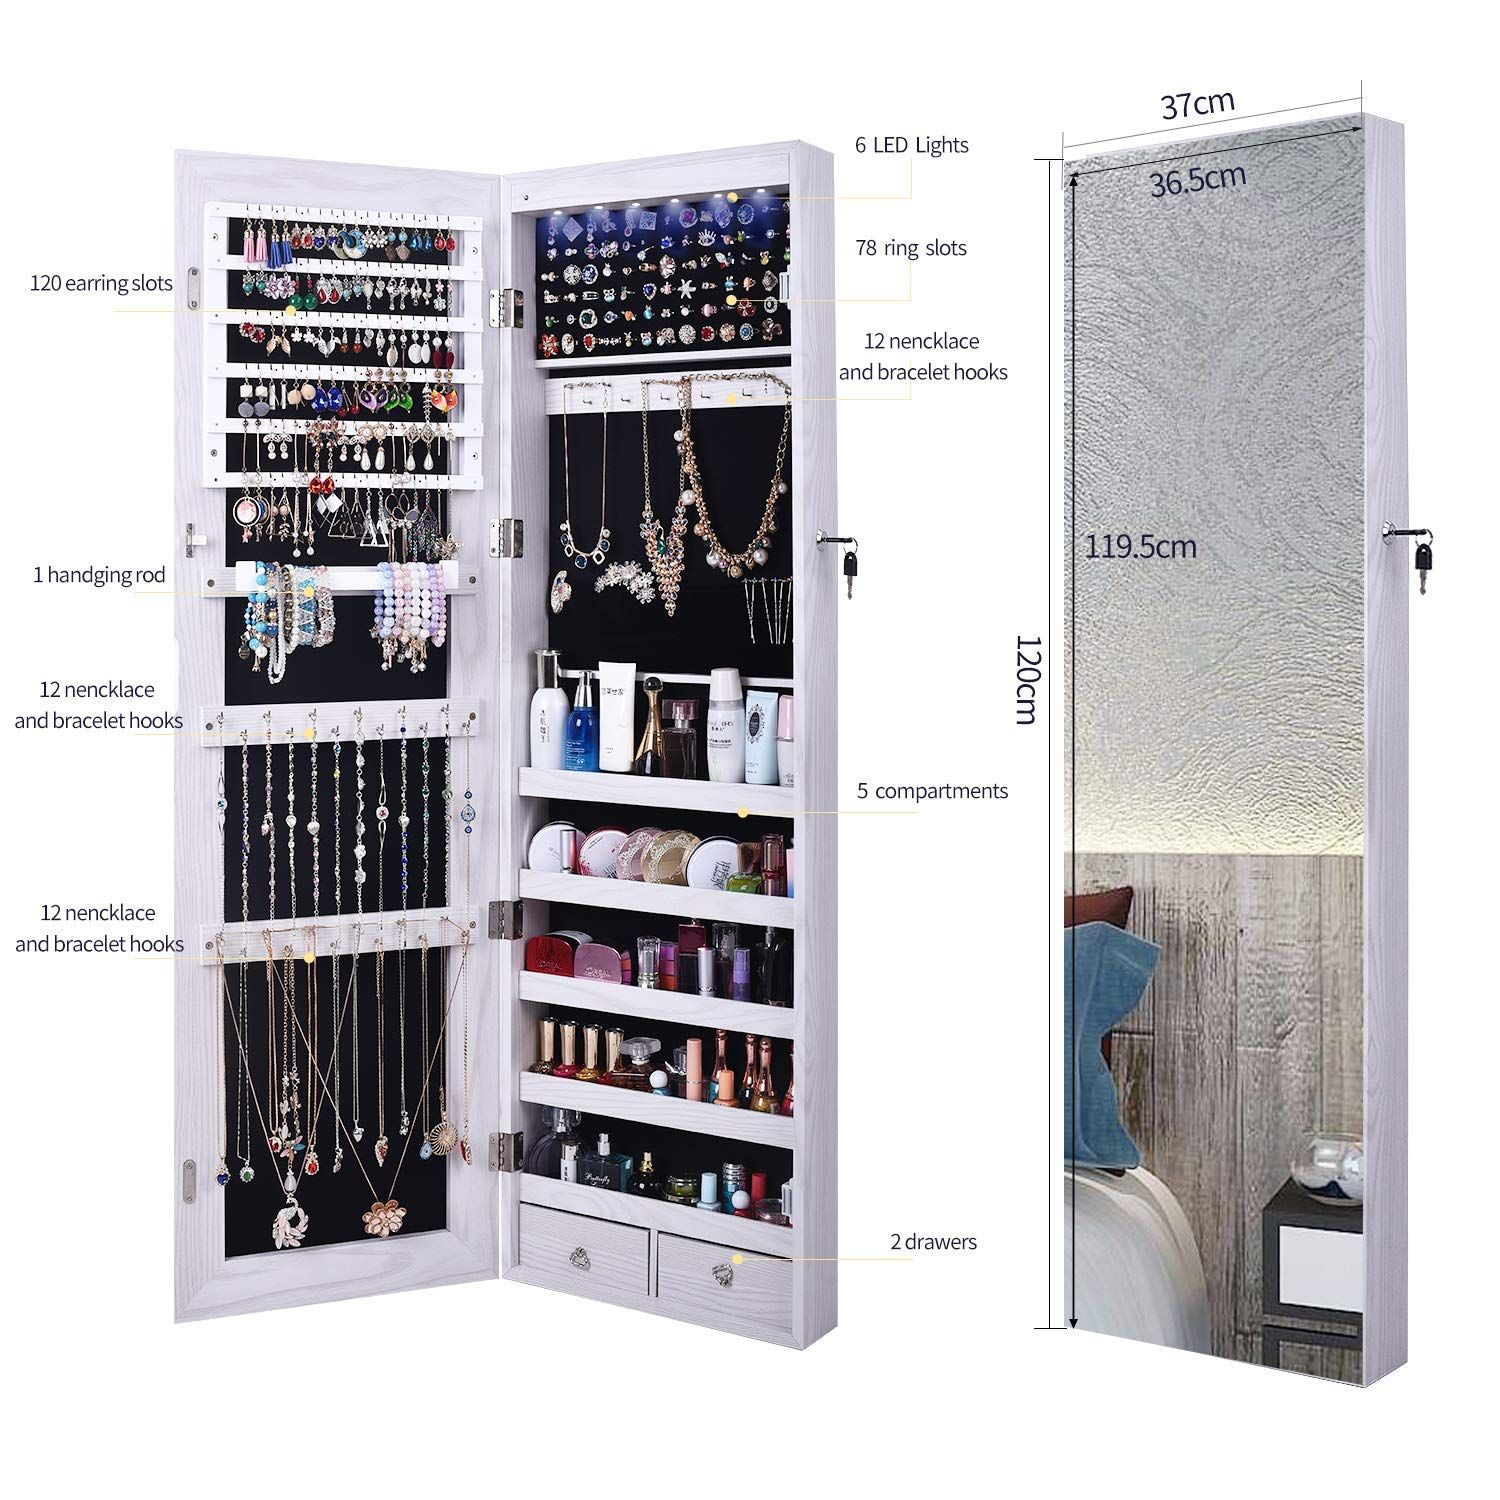 Aoou Jewelry Organizer Jewelry Cabinet Full Screen Display View Larger Mirror Lockable Wall Door Mounted Full Jewelry Mirror Jewelry Cabinet Dressing Mirror